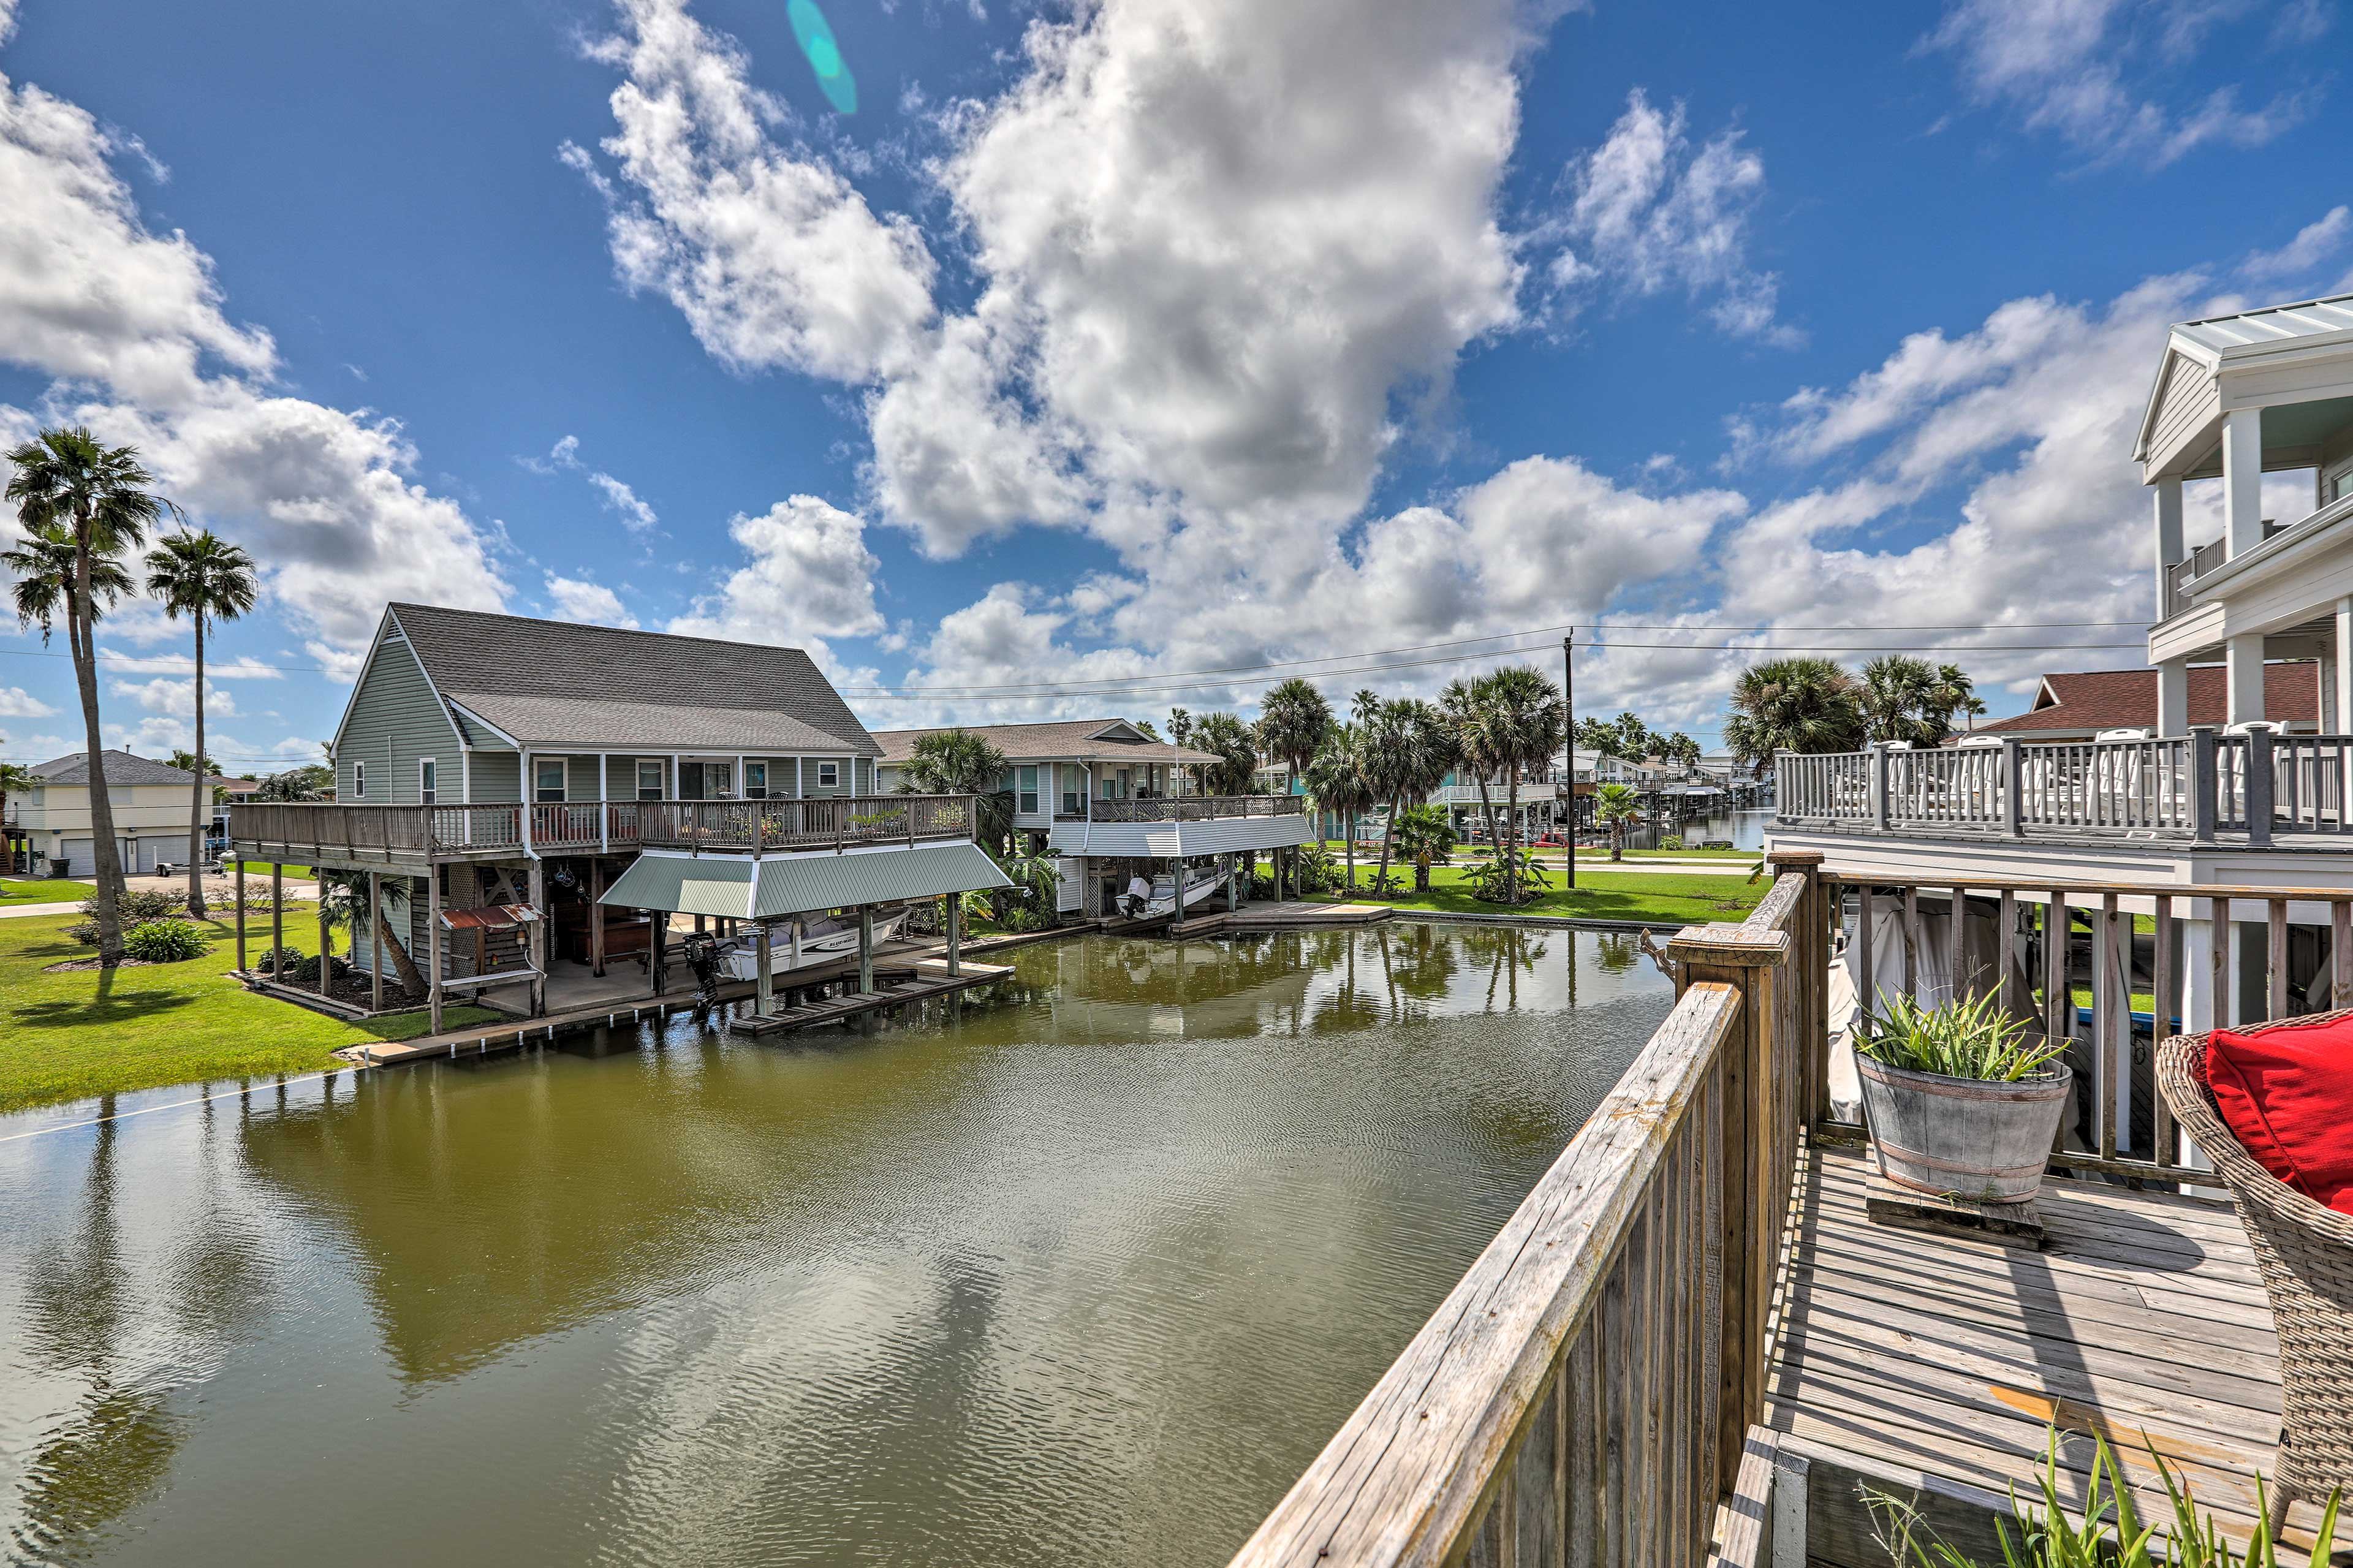 Enjoy serene views of the canal as your backyard!